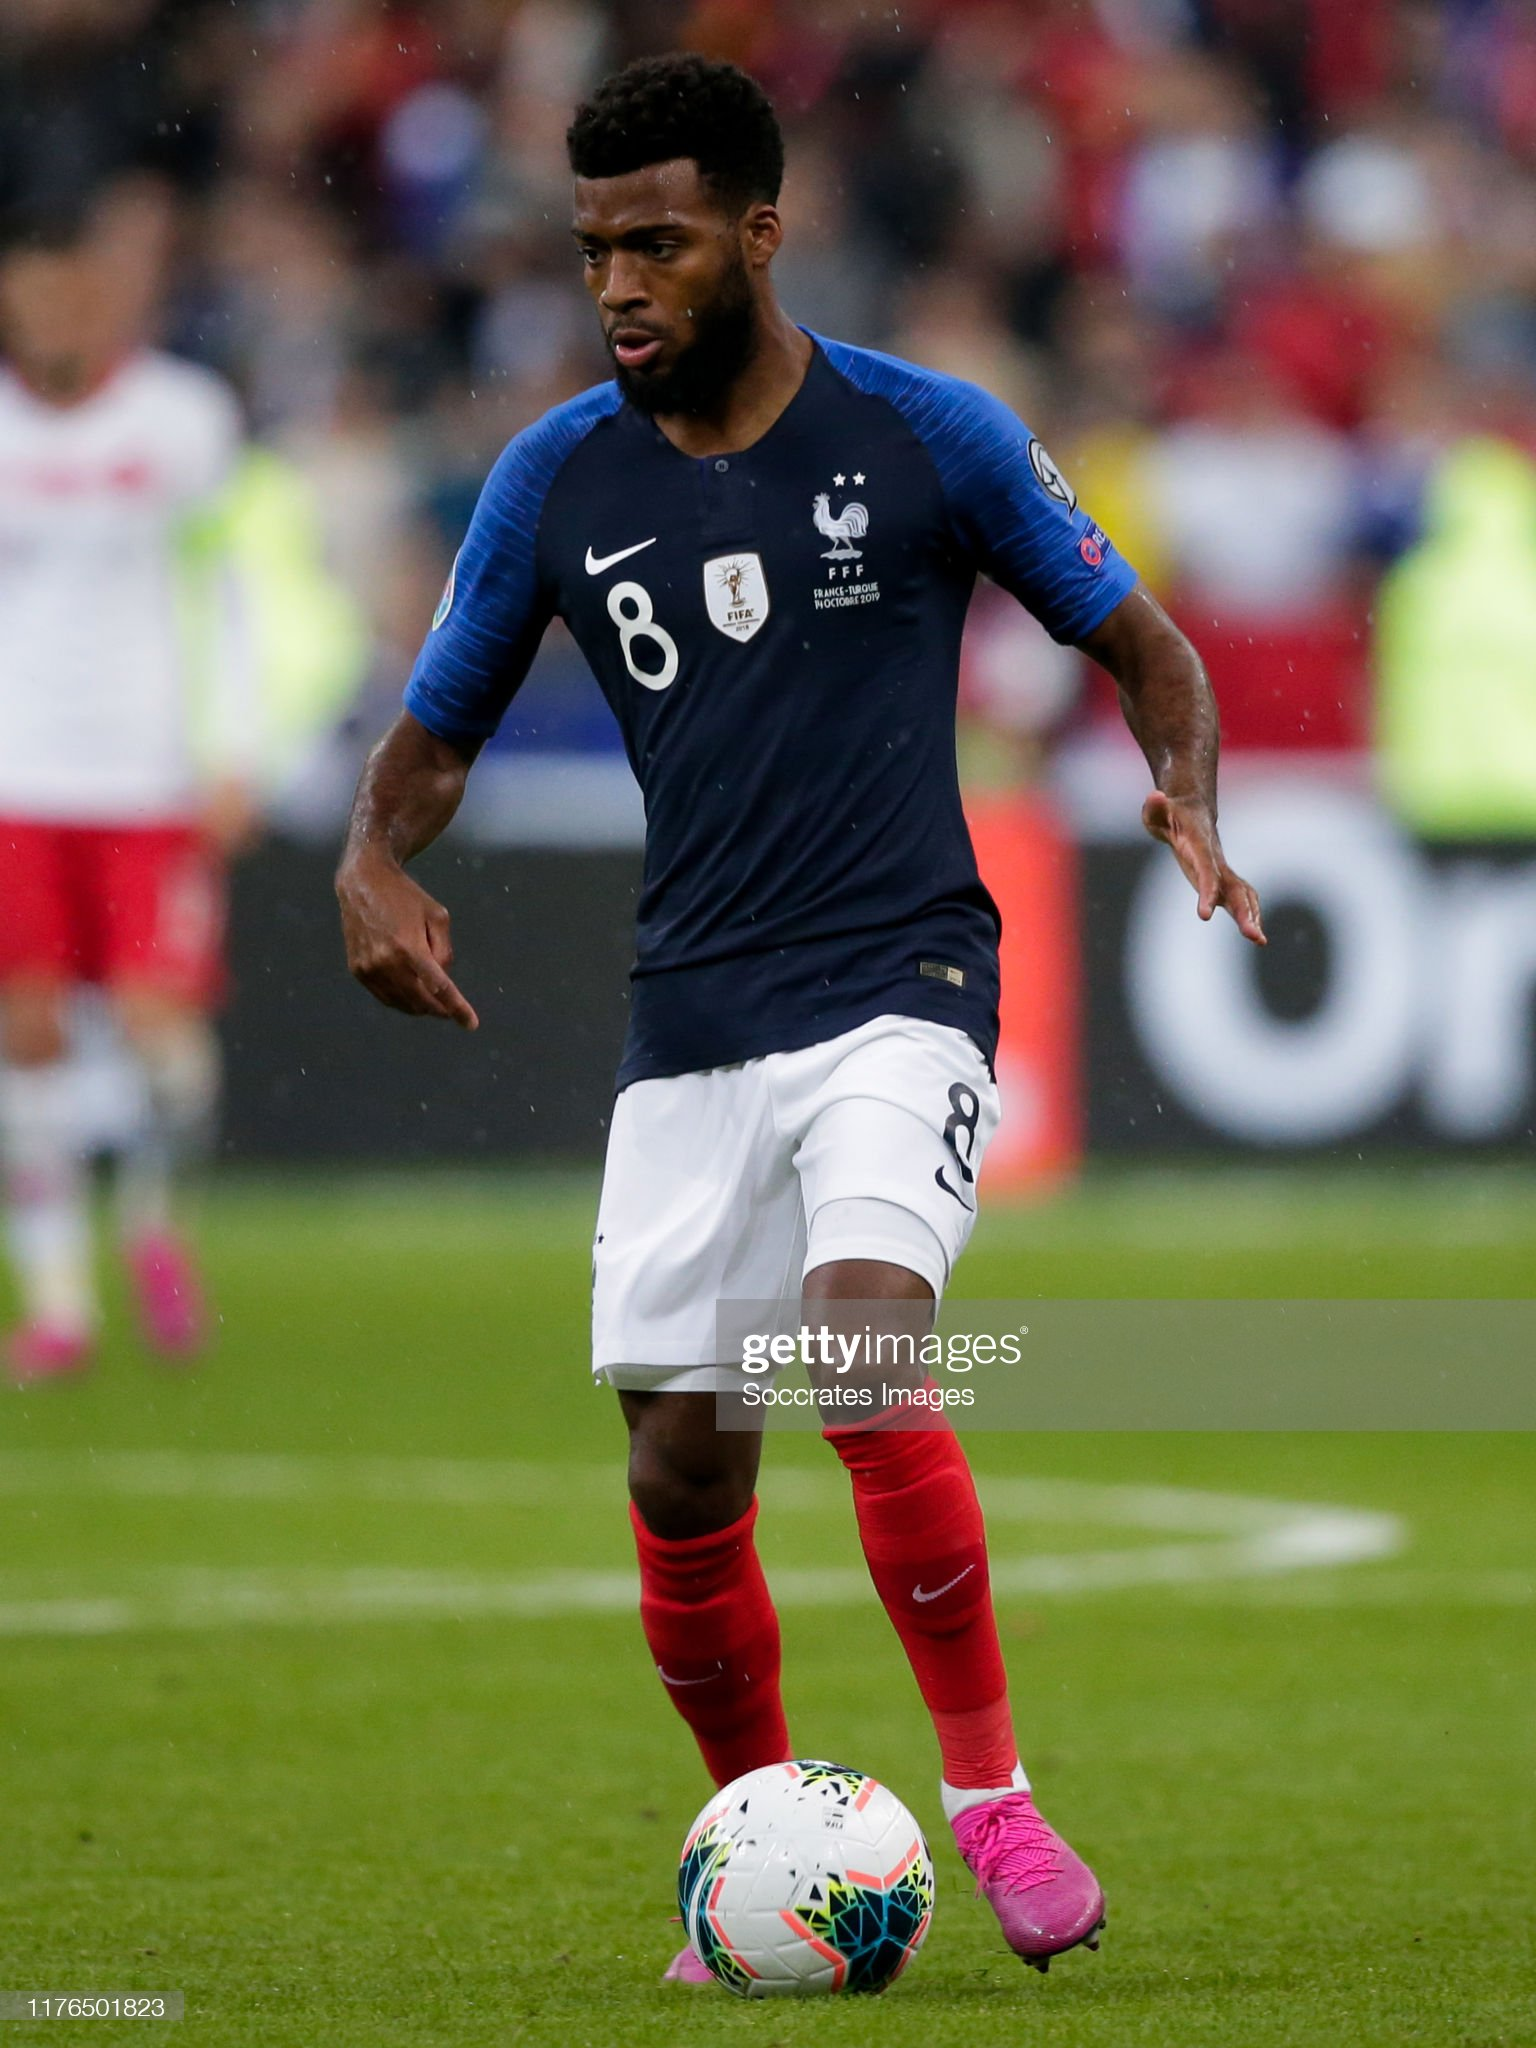 ¿Cuánto mide Thomas Lemar? - Altura - Real height Thomas-lemar-of-france-during-the-euro-qualifier-match-between-france-picture-id1176501823?s=2048x2048